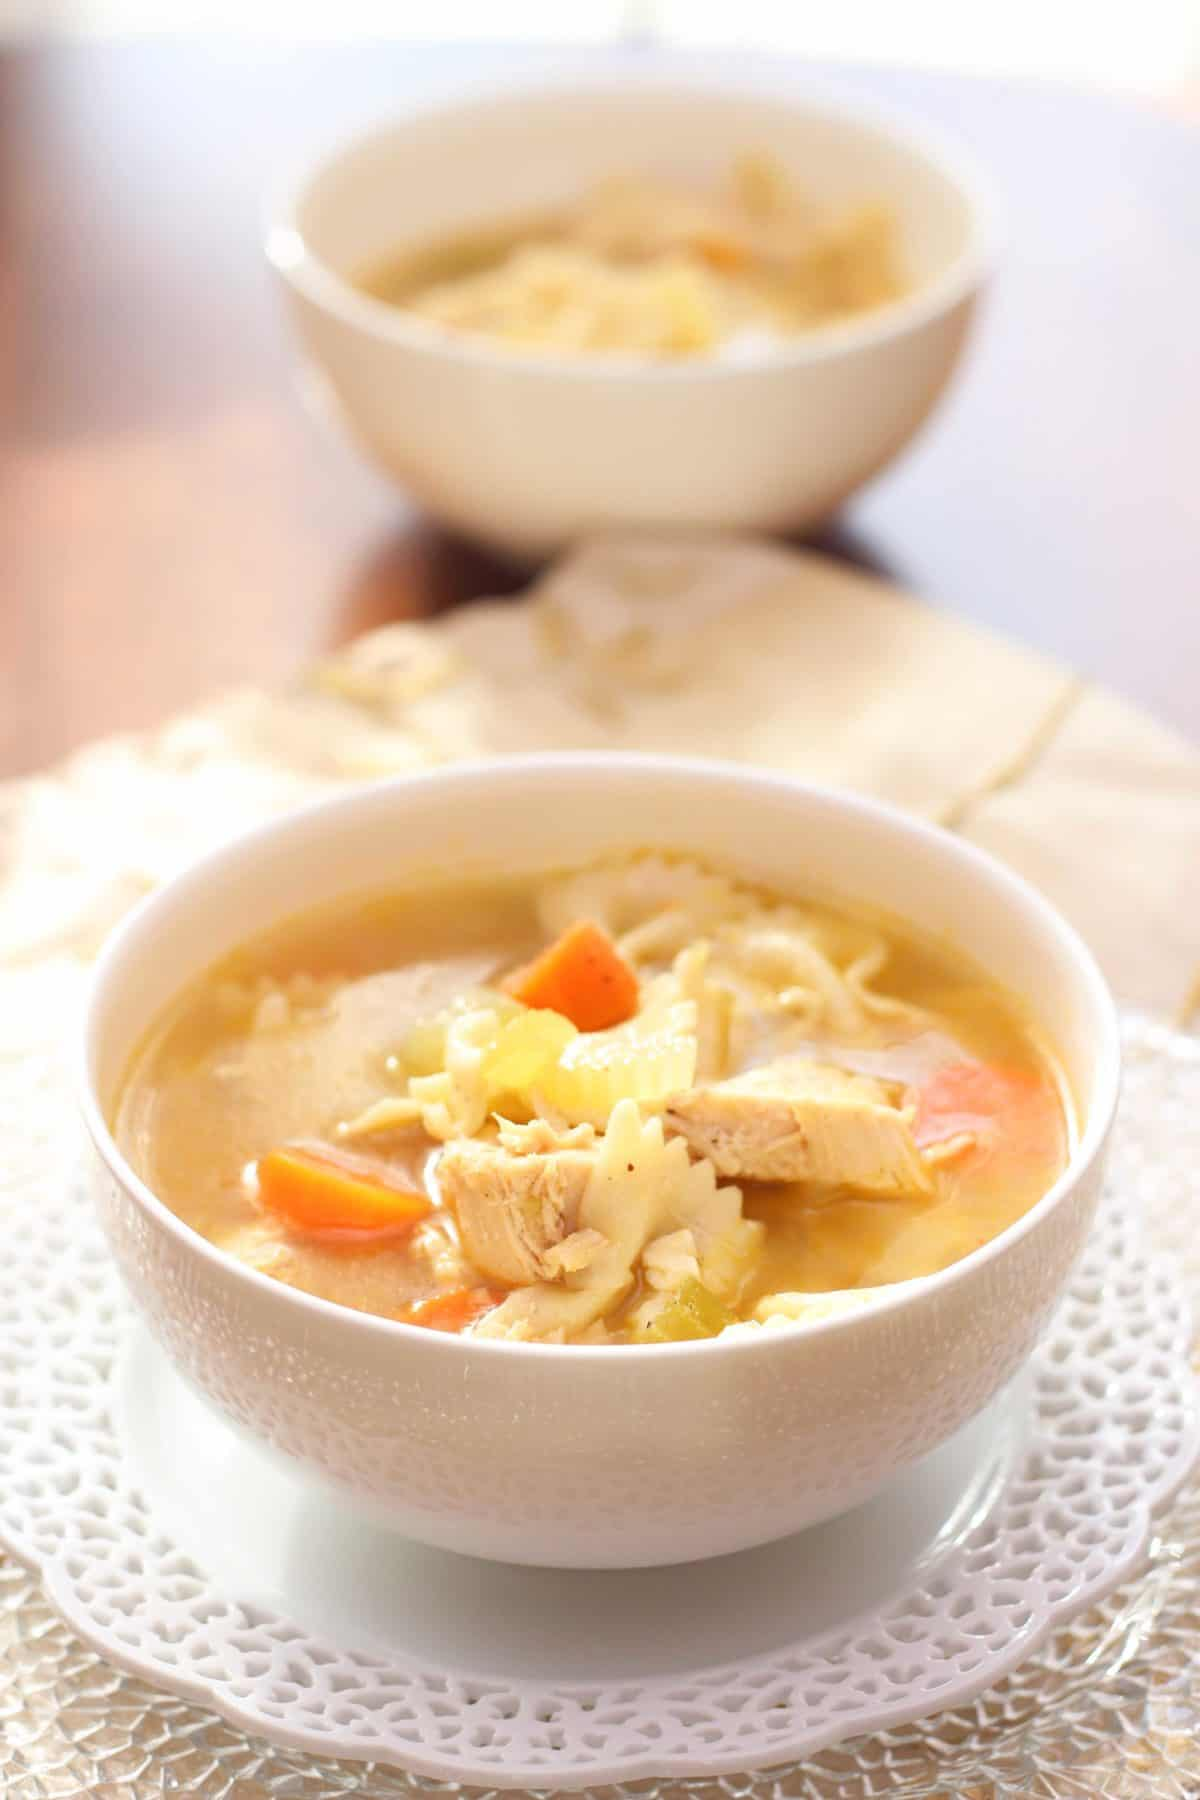 a bowl of chicken soup on a white lace plate.